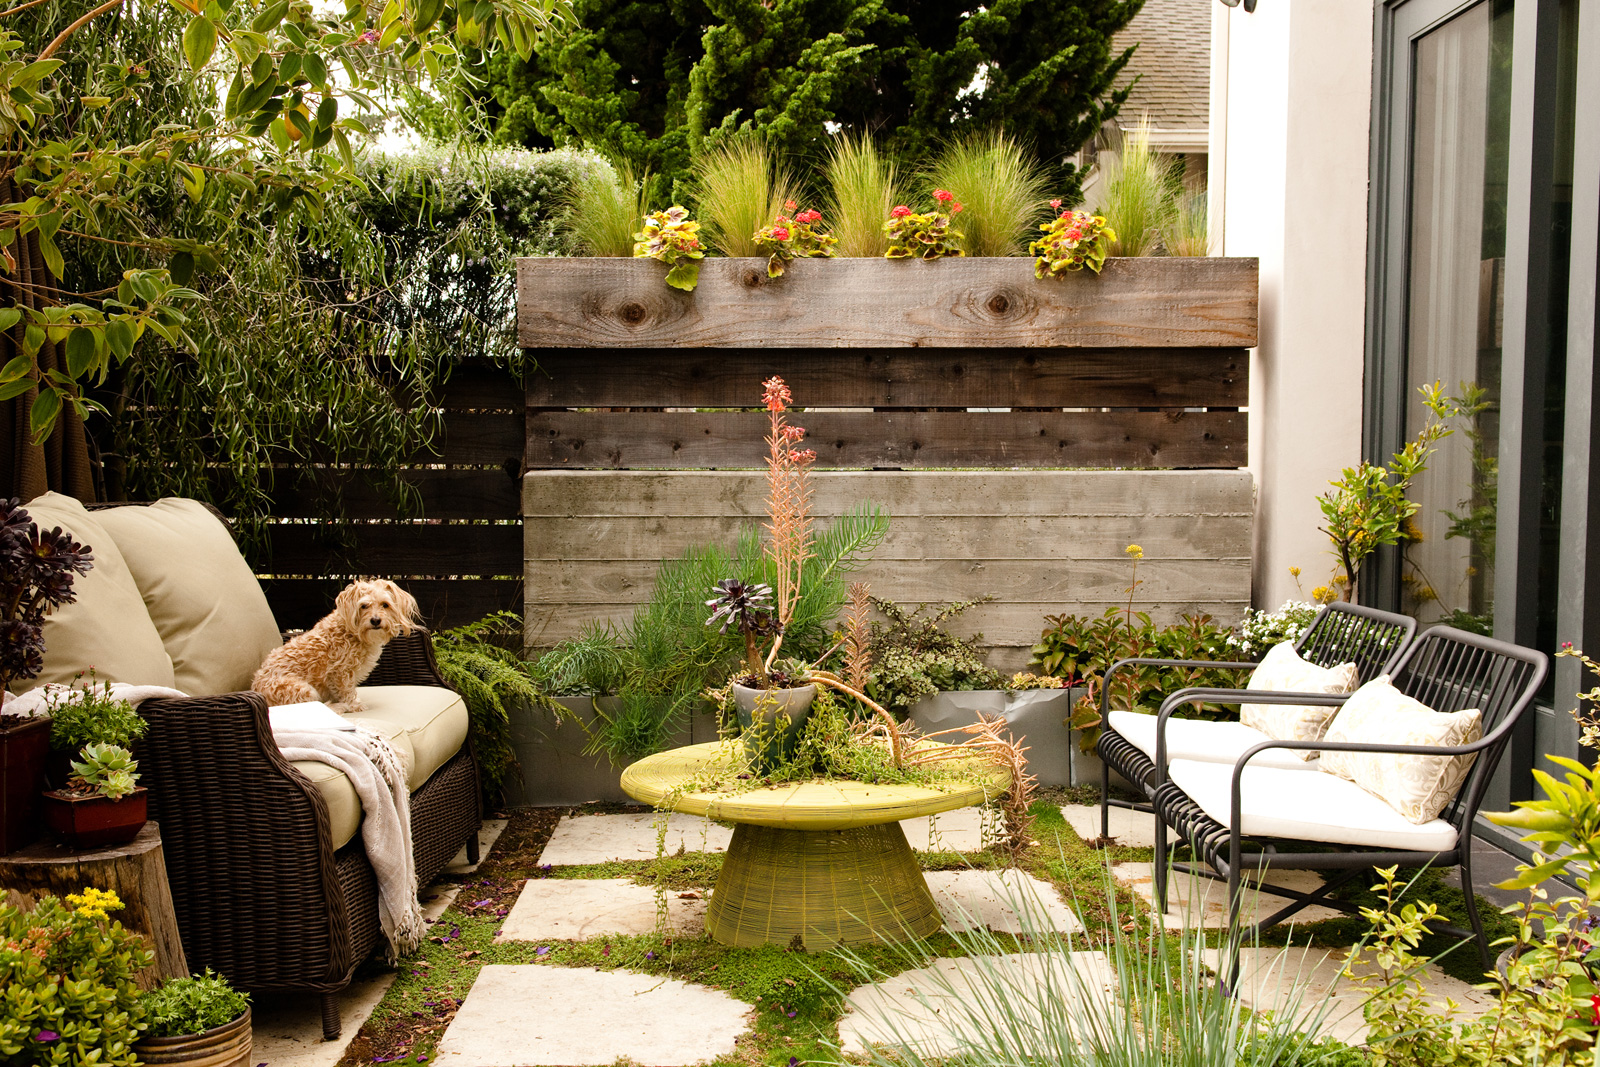 Small Backyard Ideas How To Make A Small Space Look Bigger - Small backyard ideas